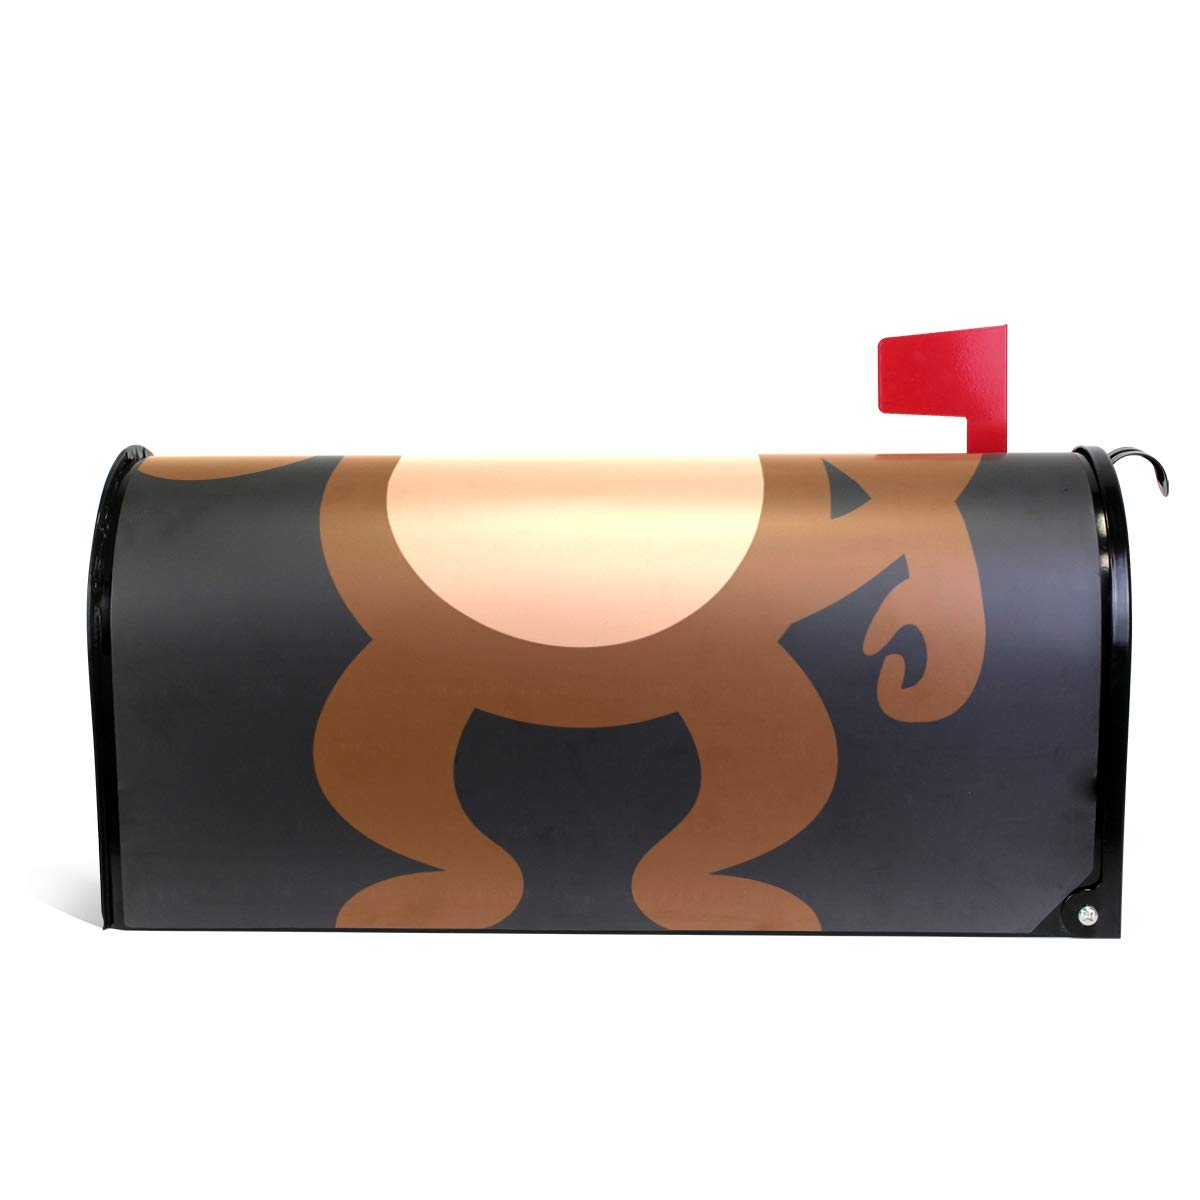 Ladninag Mailbox Covers Magnetic Cute Monkey with Banana Standard